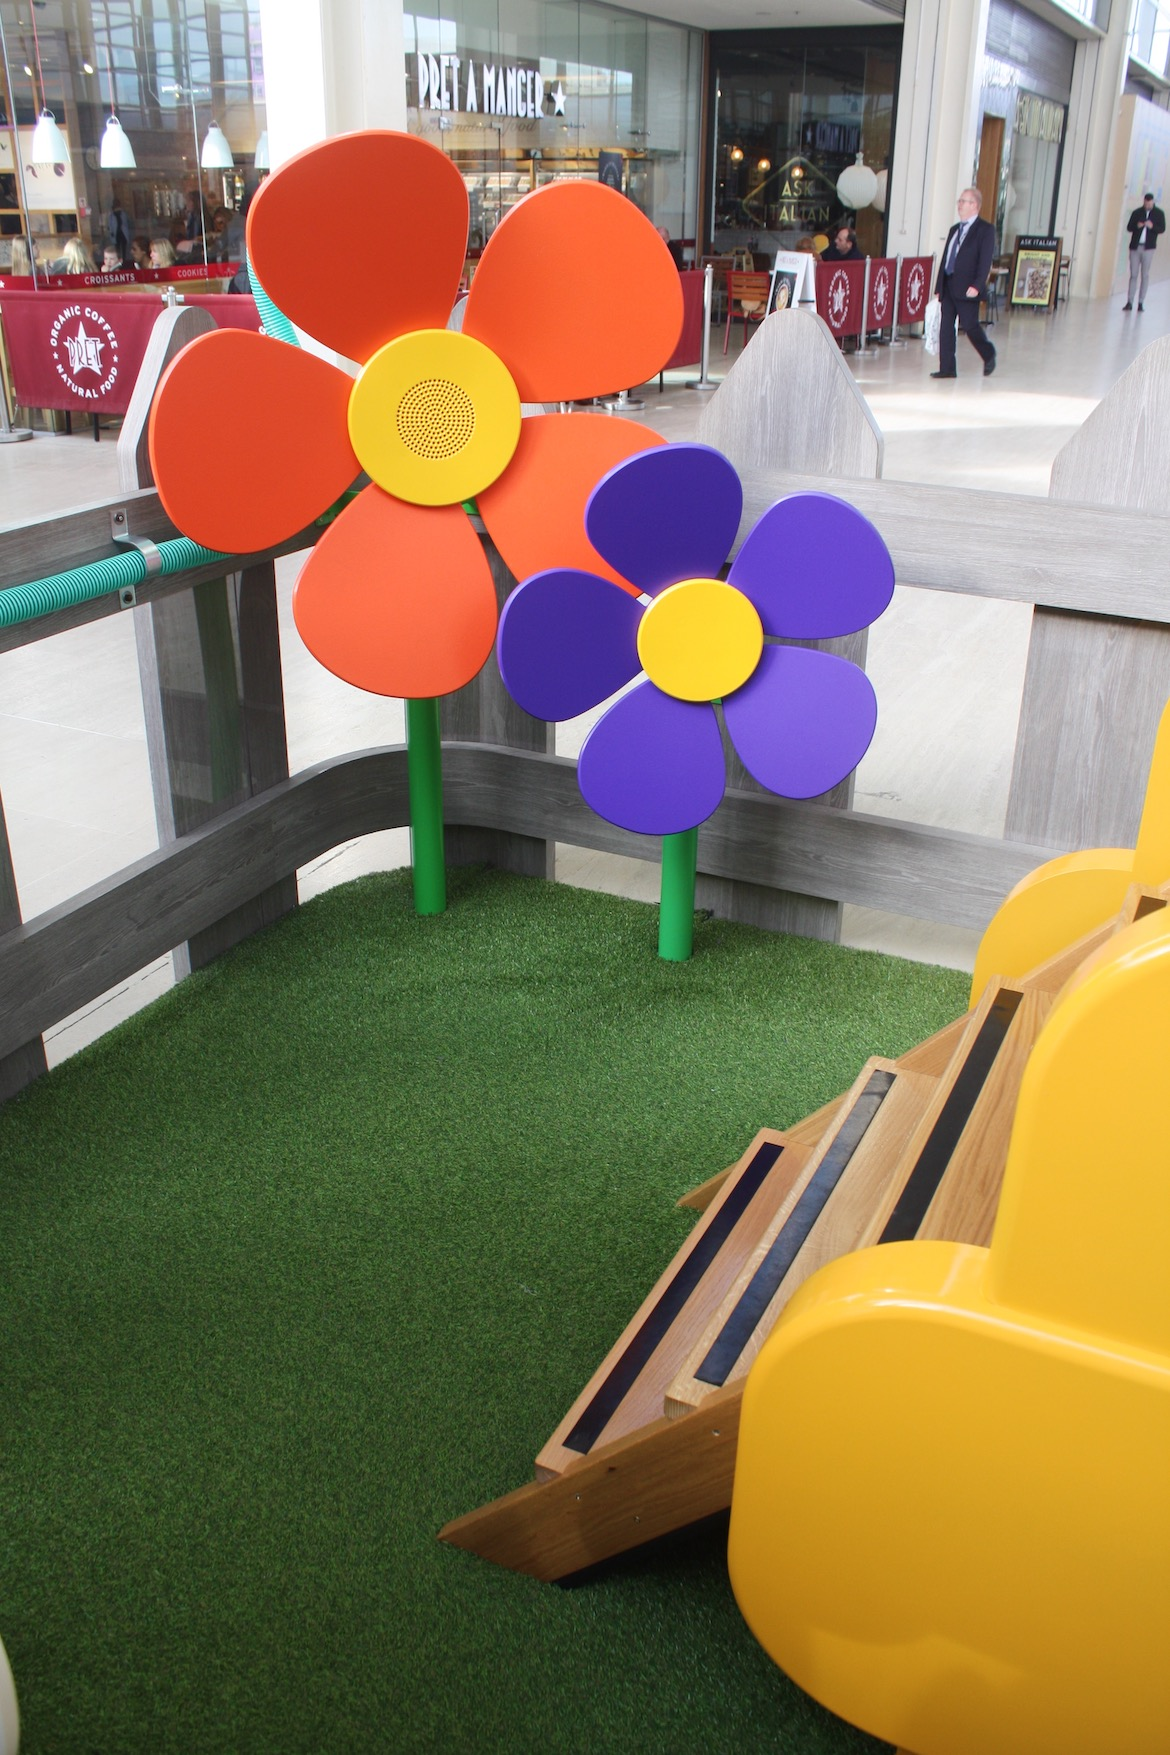 These flowers are connected with interactive speak and listen tubes, so children can send messages to each other as they play.